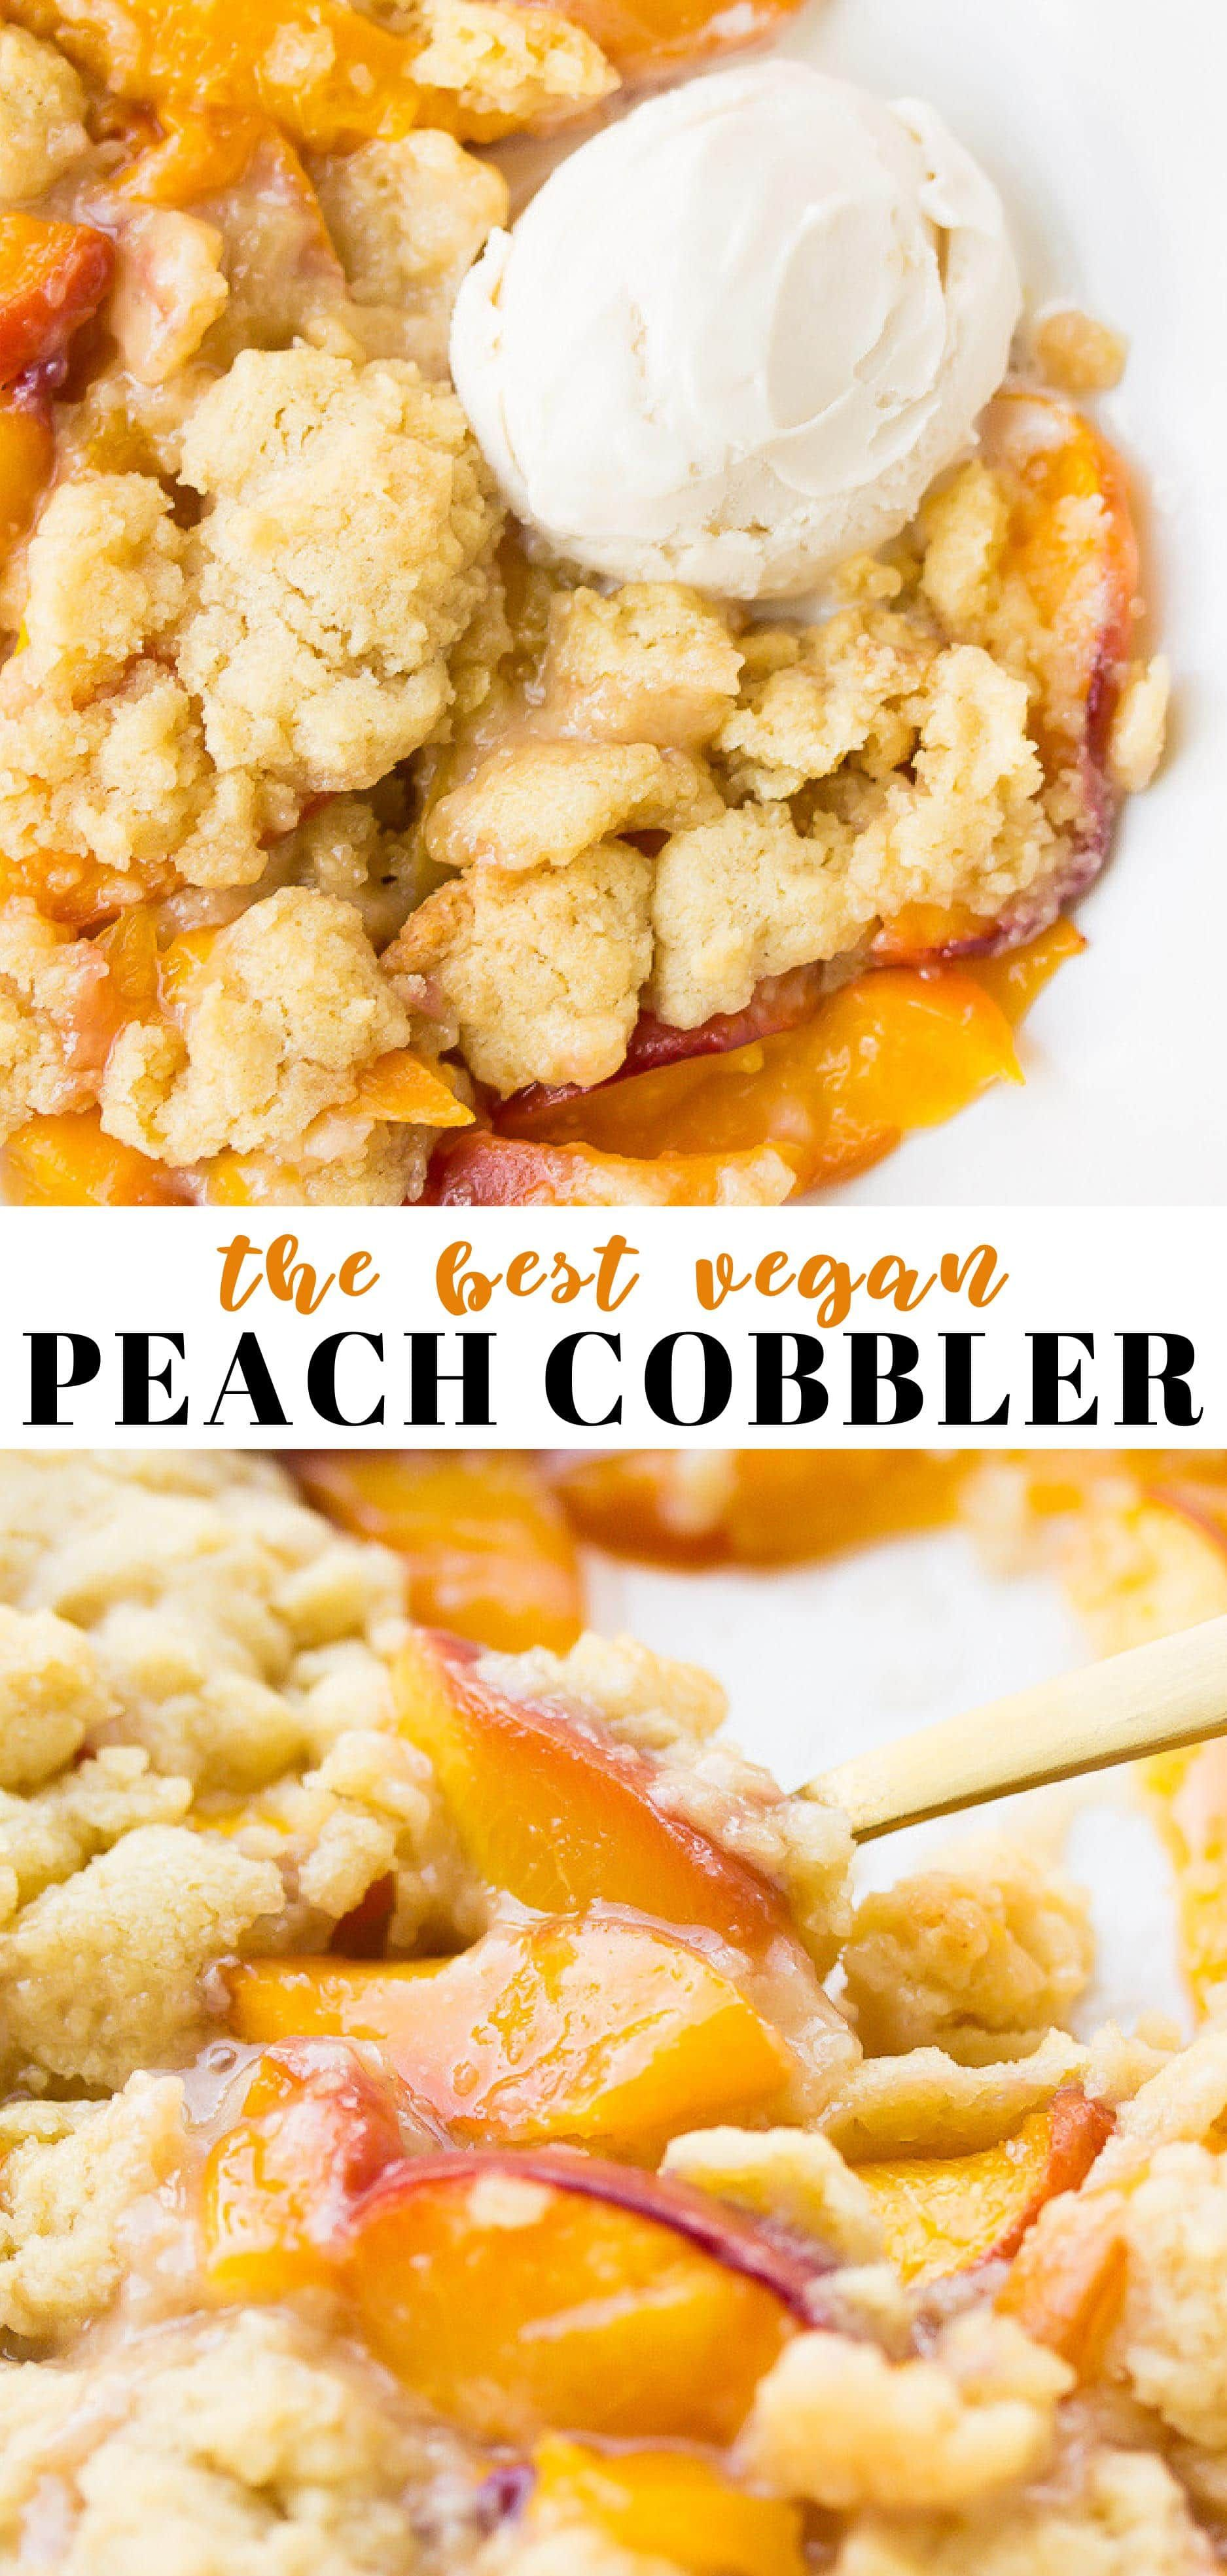 The best ever vegan peach cobbler! Perfect when peaches are in season, and SO easy to throw together! #vegan #plantbased #dairyfree #peachideas